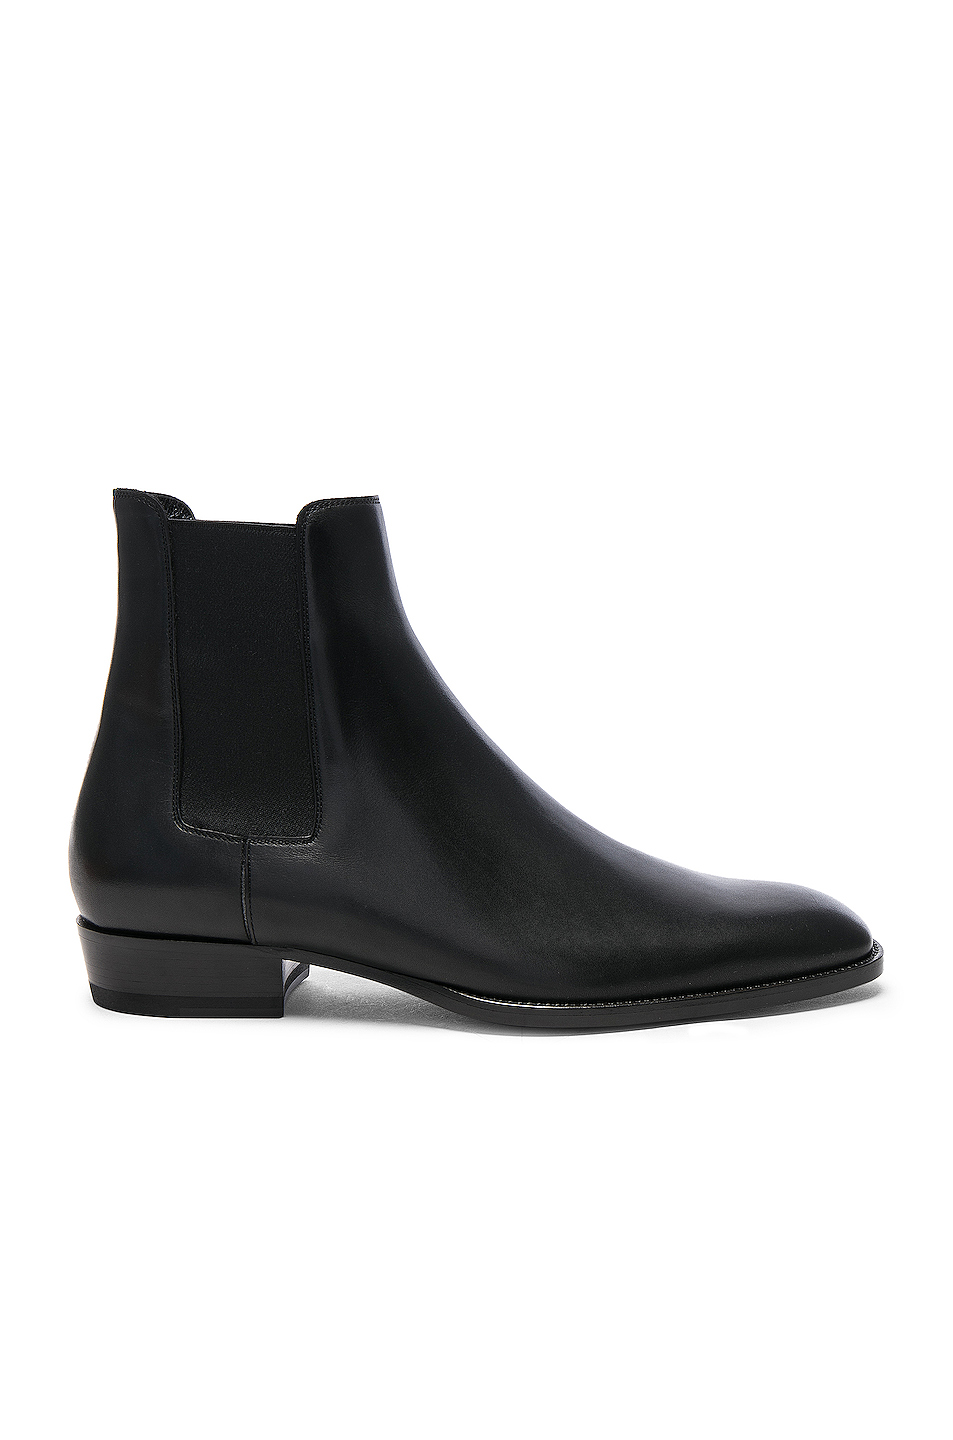 Saint Laurent Leather Wyatt Chelsea Boots in Black